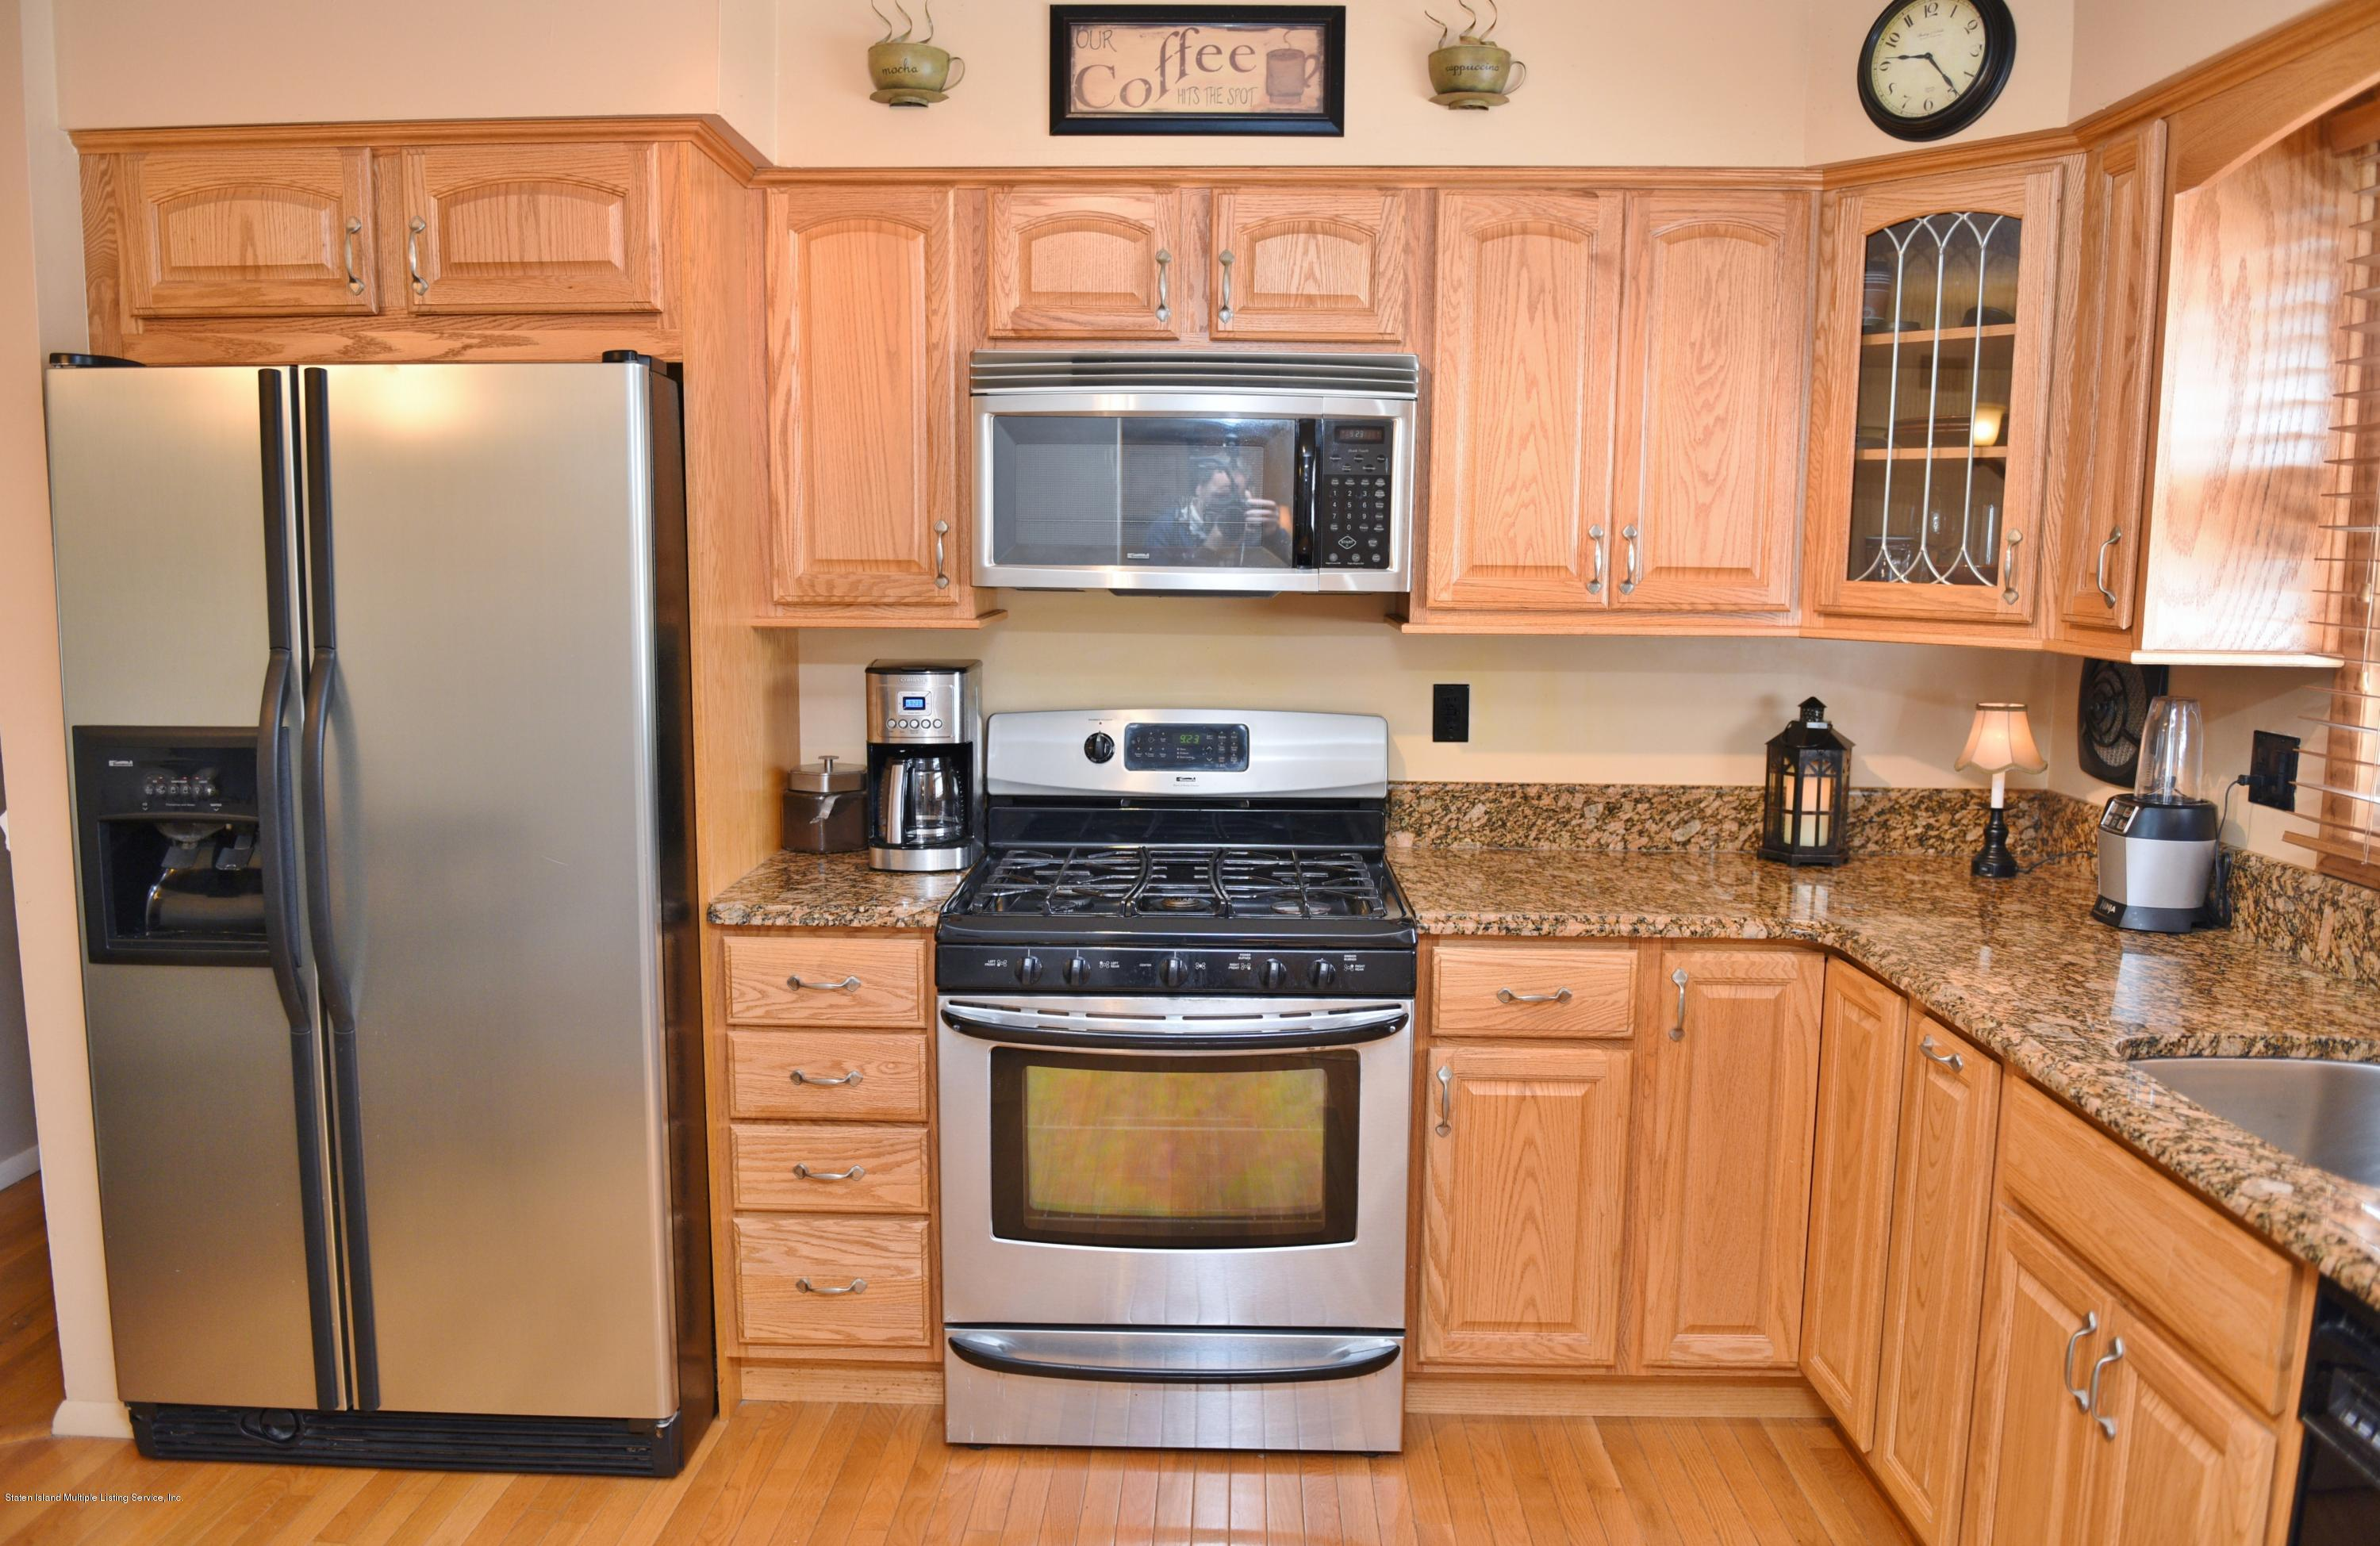 Single Family - Detached 41 Prices Lane  Staten Island, NY 10314, MLS-1129754-11